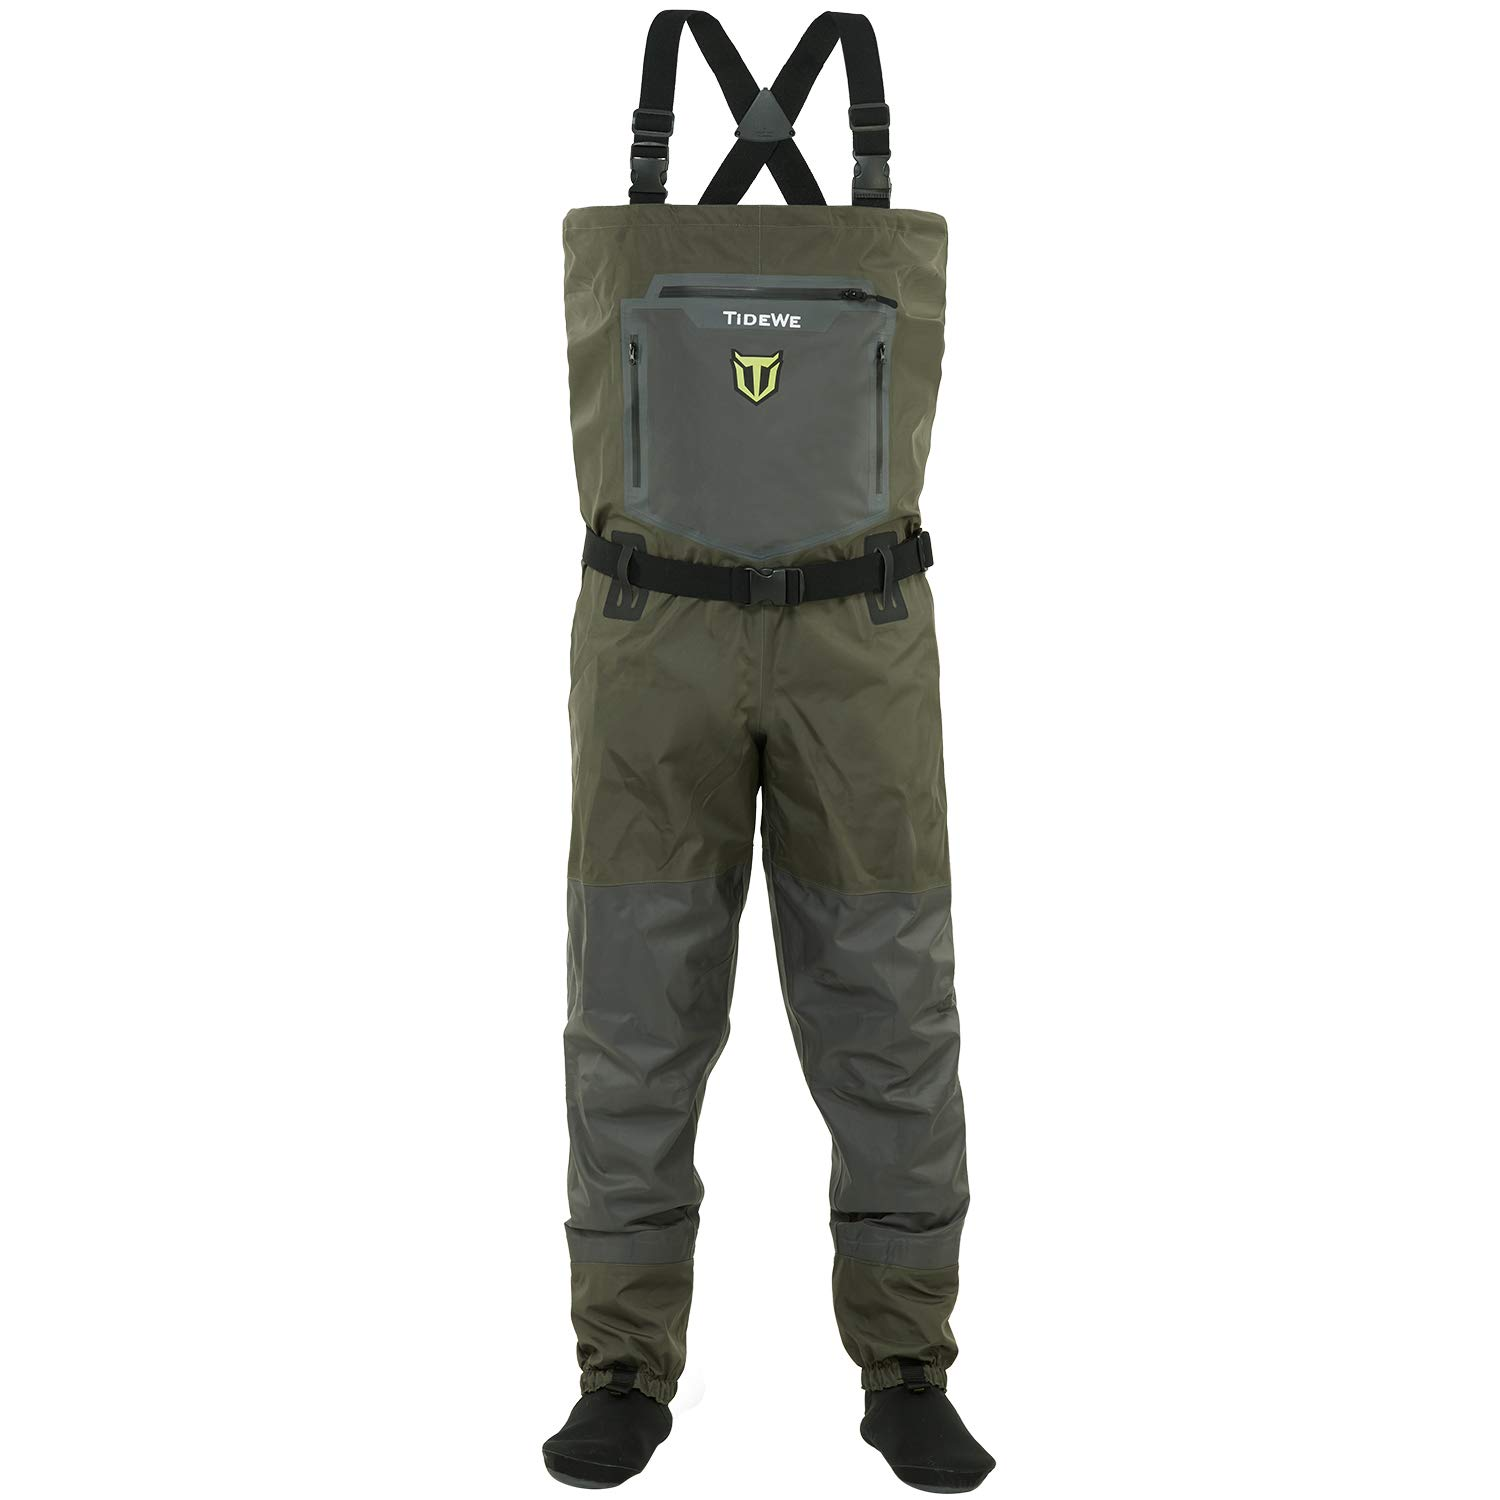 TideWe Breathable Waders Waterproof Stockingfoot Chest Waders with Zippered Pockets Lightweight Fly Fishing Waders for Men and Women